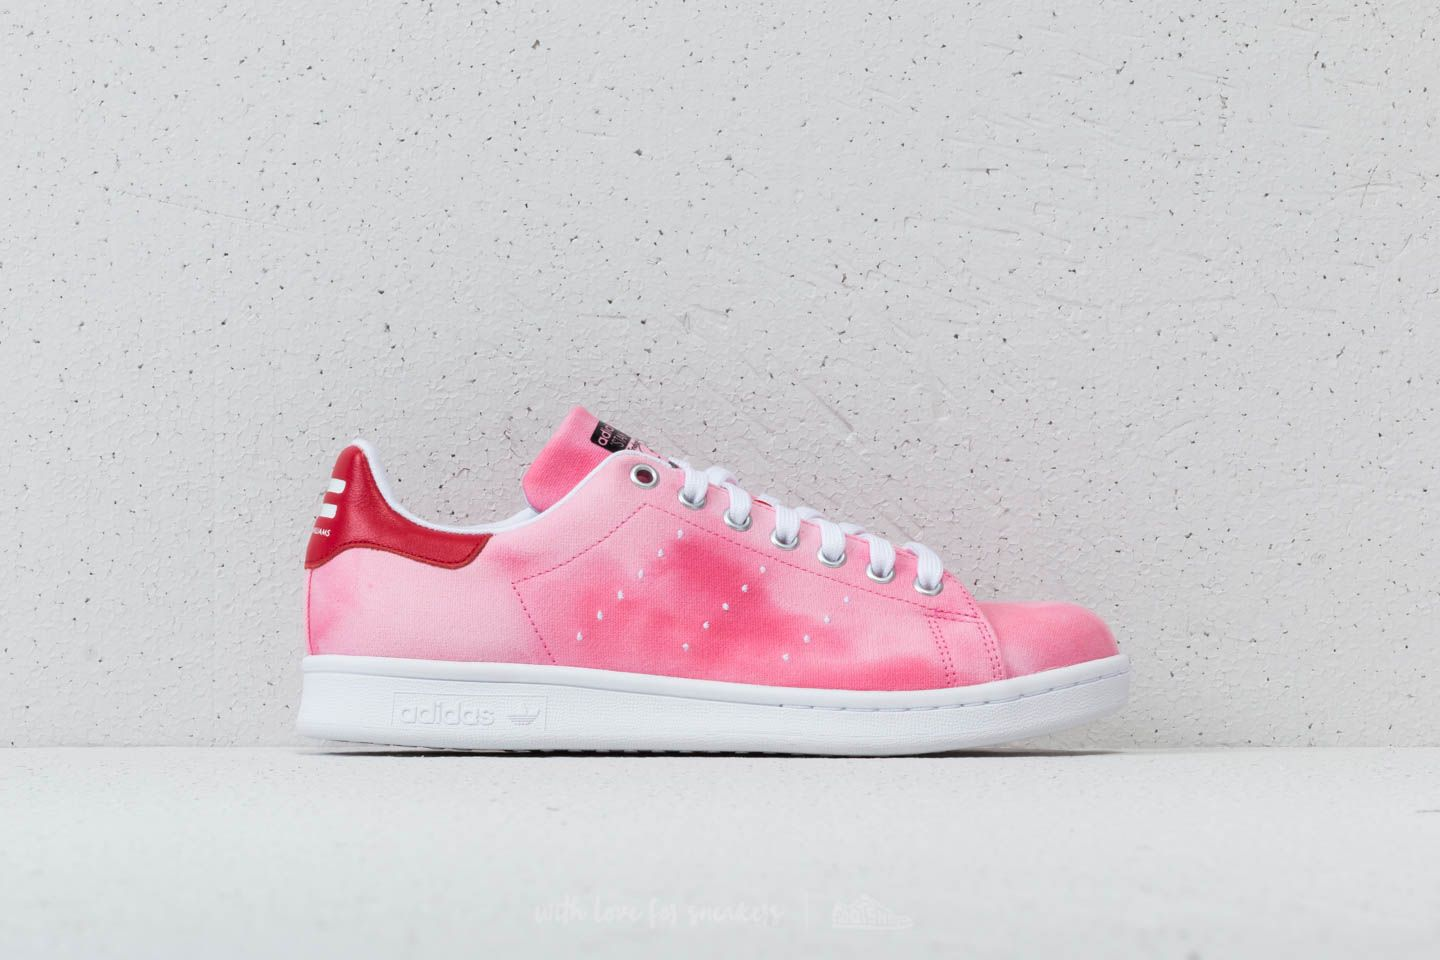 stan smith x pharrell williams adidas x Pharrell Williams HU Holi Stan  Smith Ftw White  ... 1b08a4f6a